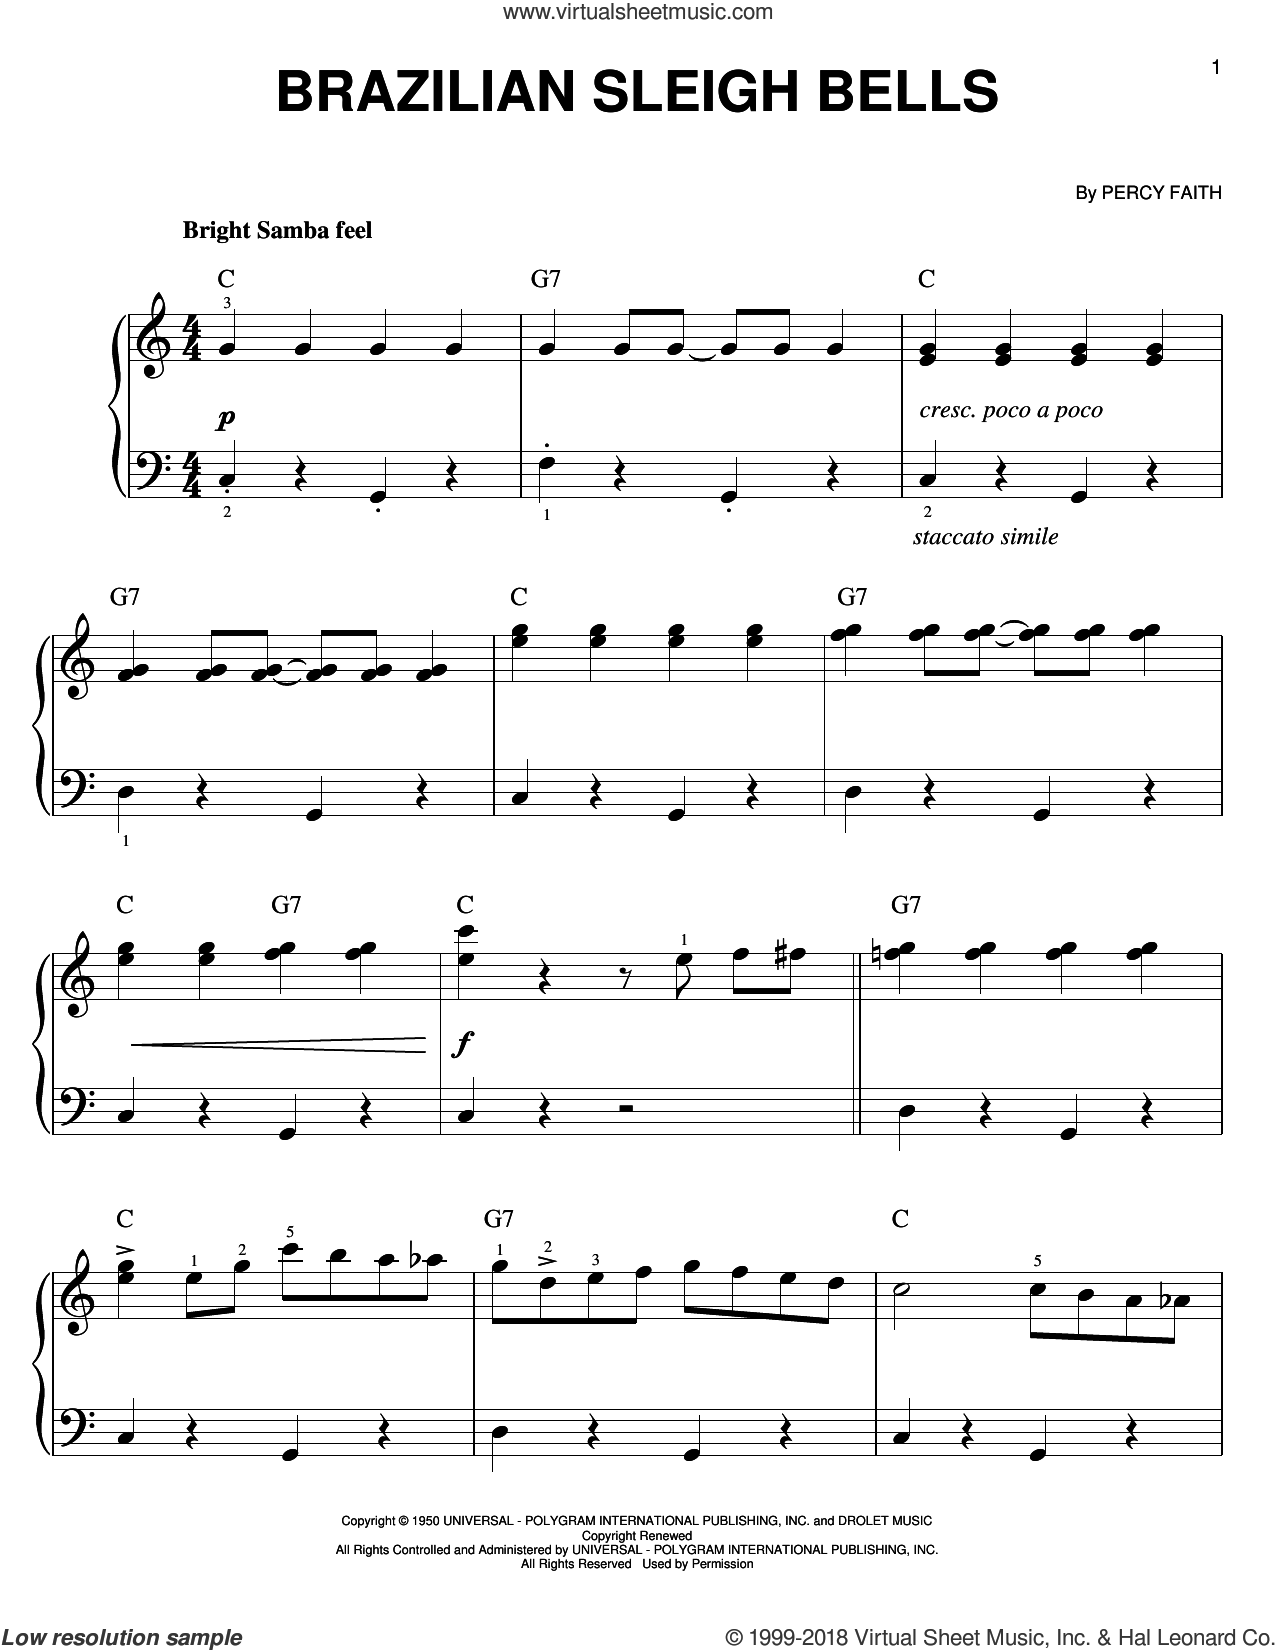 Brazilian Sleigh Bells sheet music for piano solo (chords) by Percy Faith